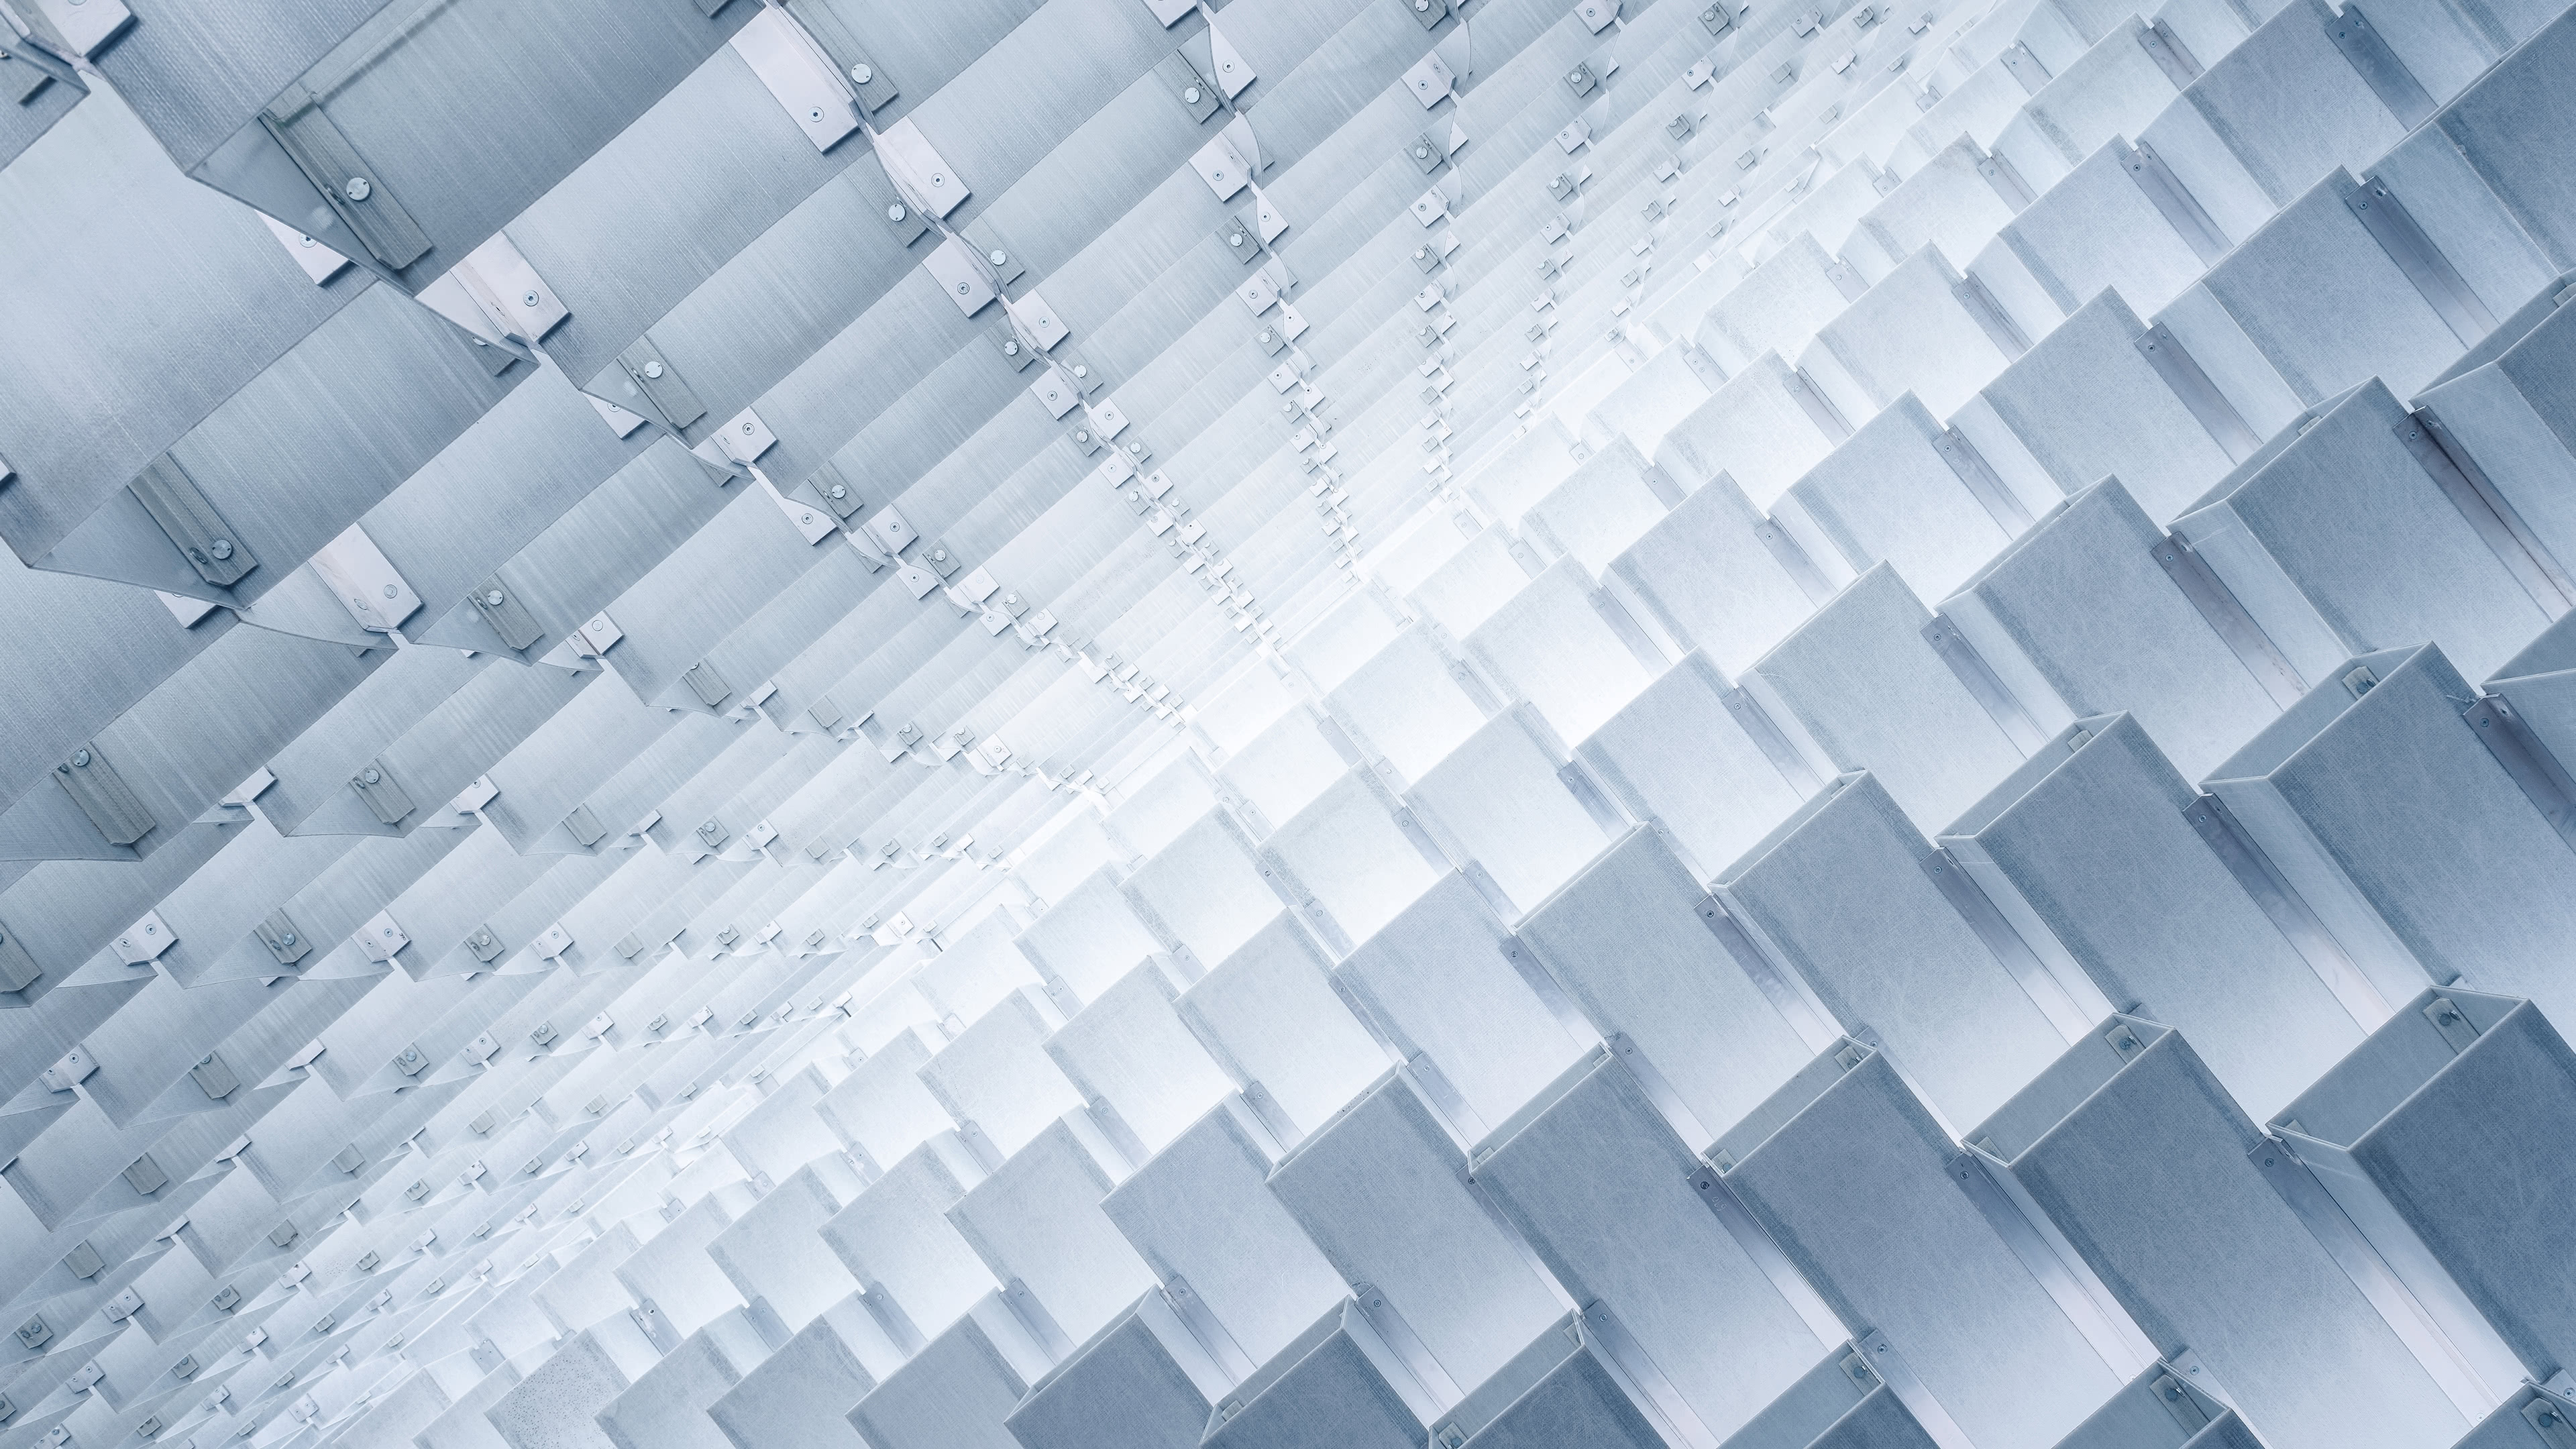 serpentine summer pavilion london uhd 4k wallpaper